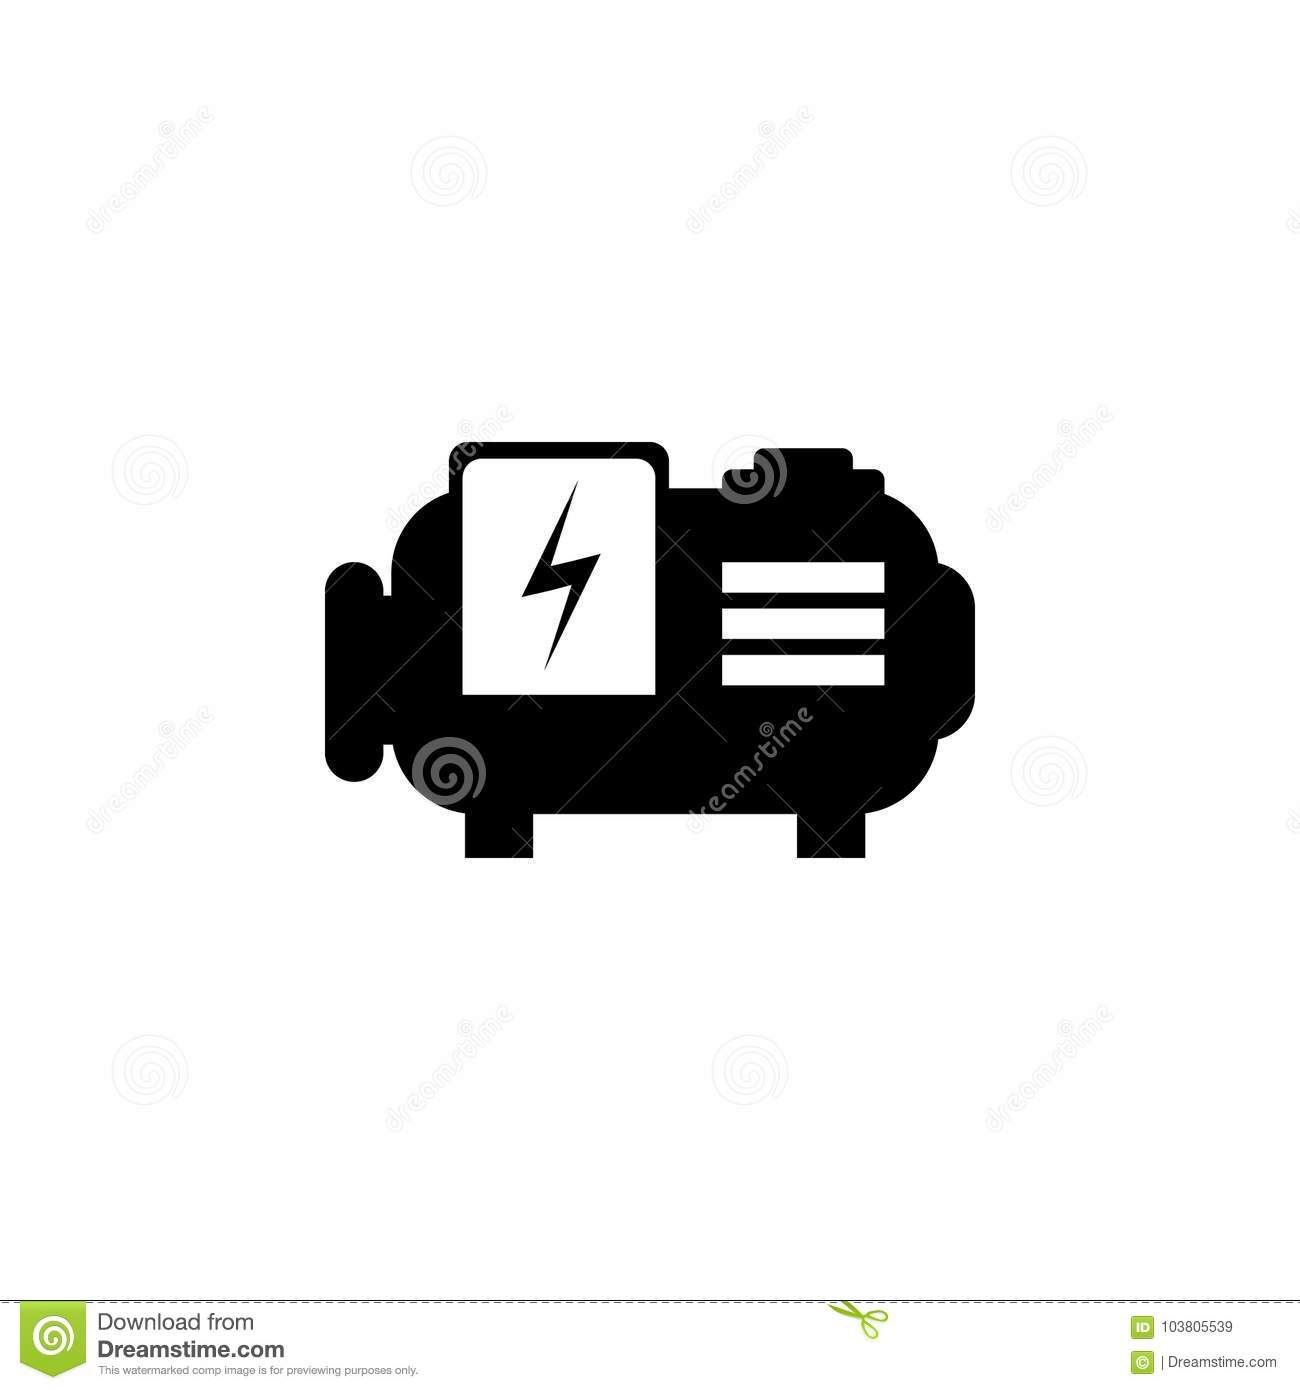 Symbol For Water Pump Franklin Electric Submersible Motor Control Wiring Diagram Icon Stock Vector Illustration Of Clean 103805539